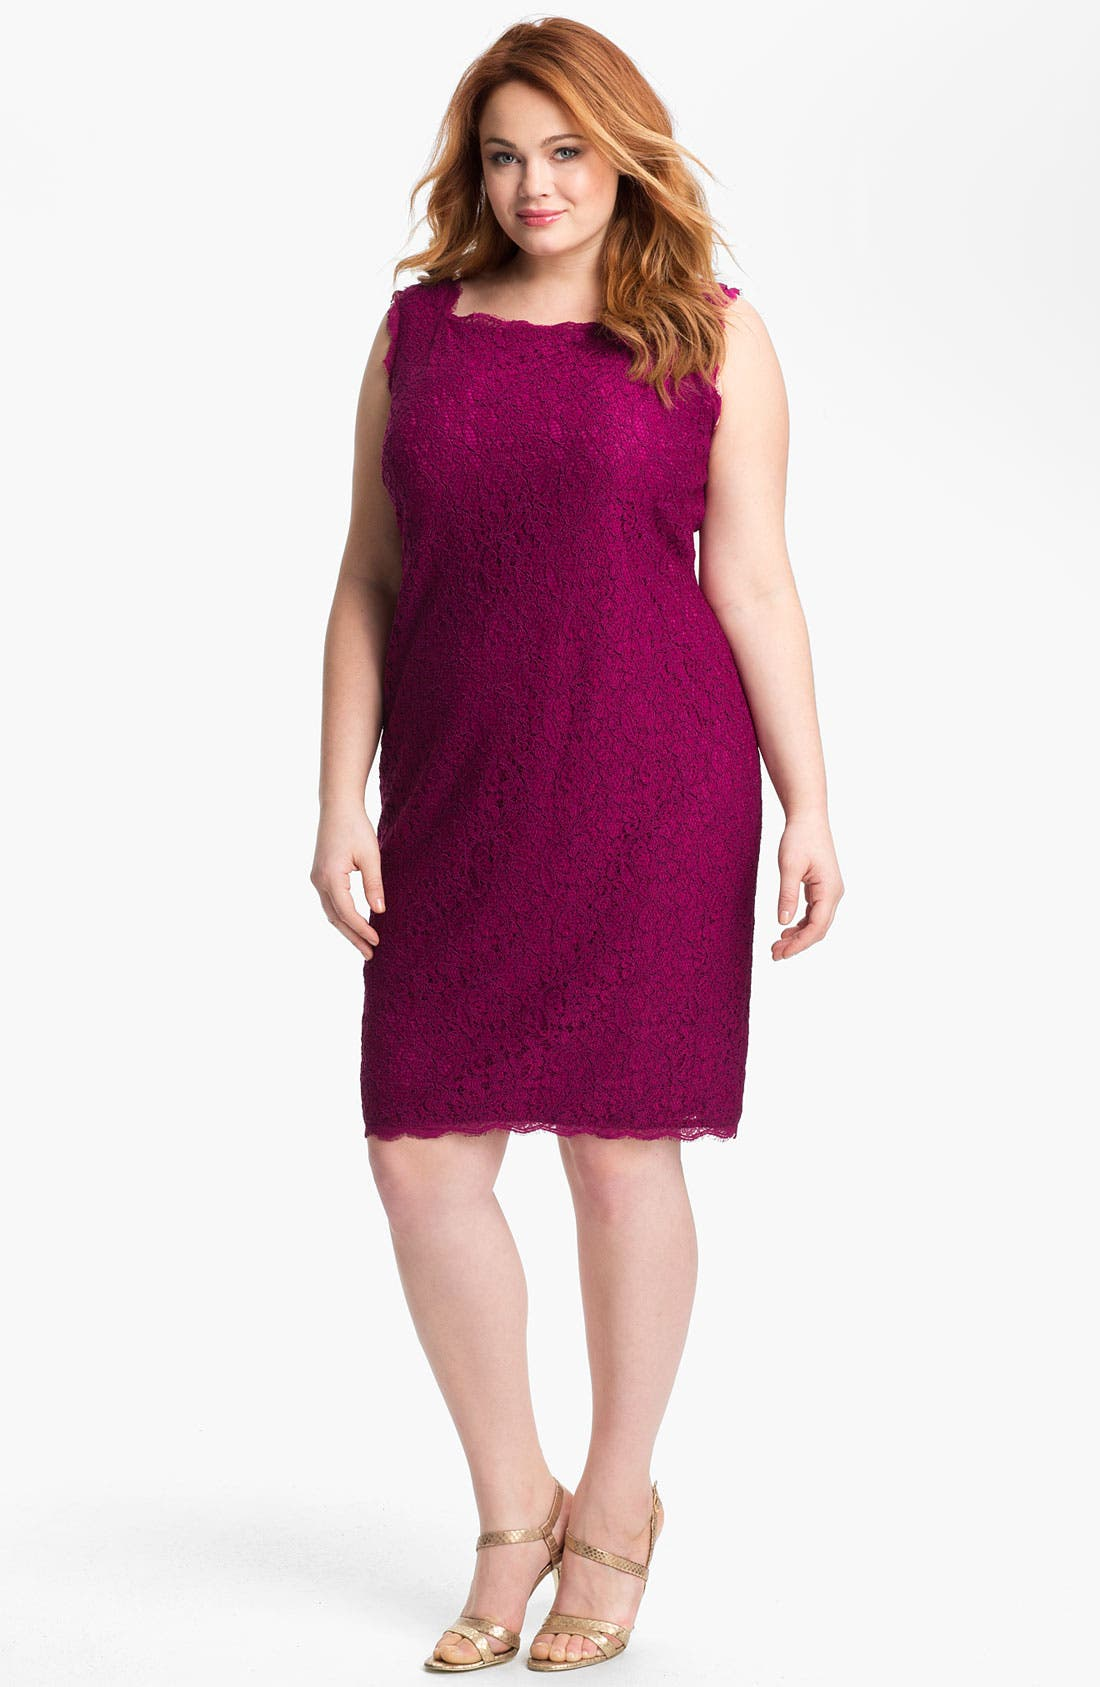 Alternate Image 1 Selected - Adrianna Papell Sleeveless Lace Sheath Dress (Plus Size)